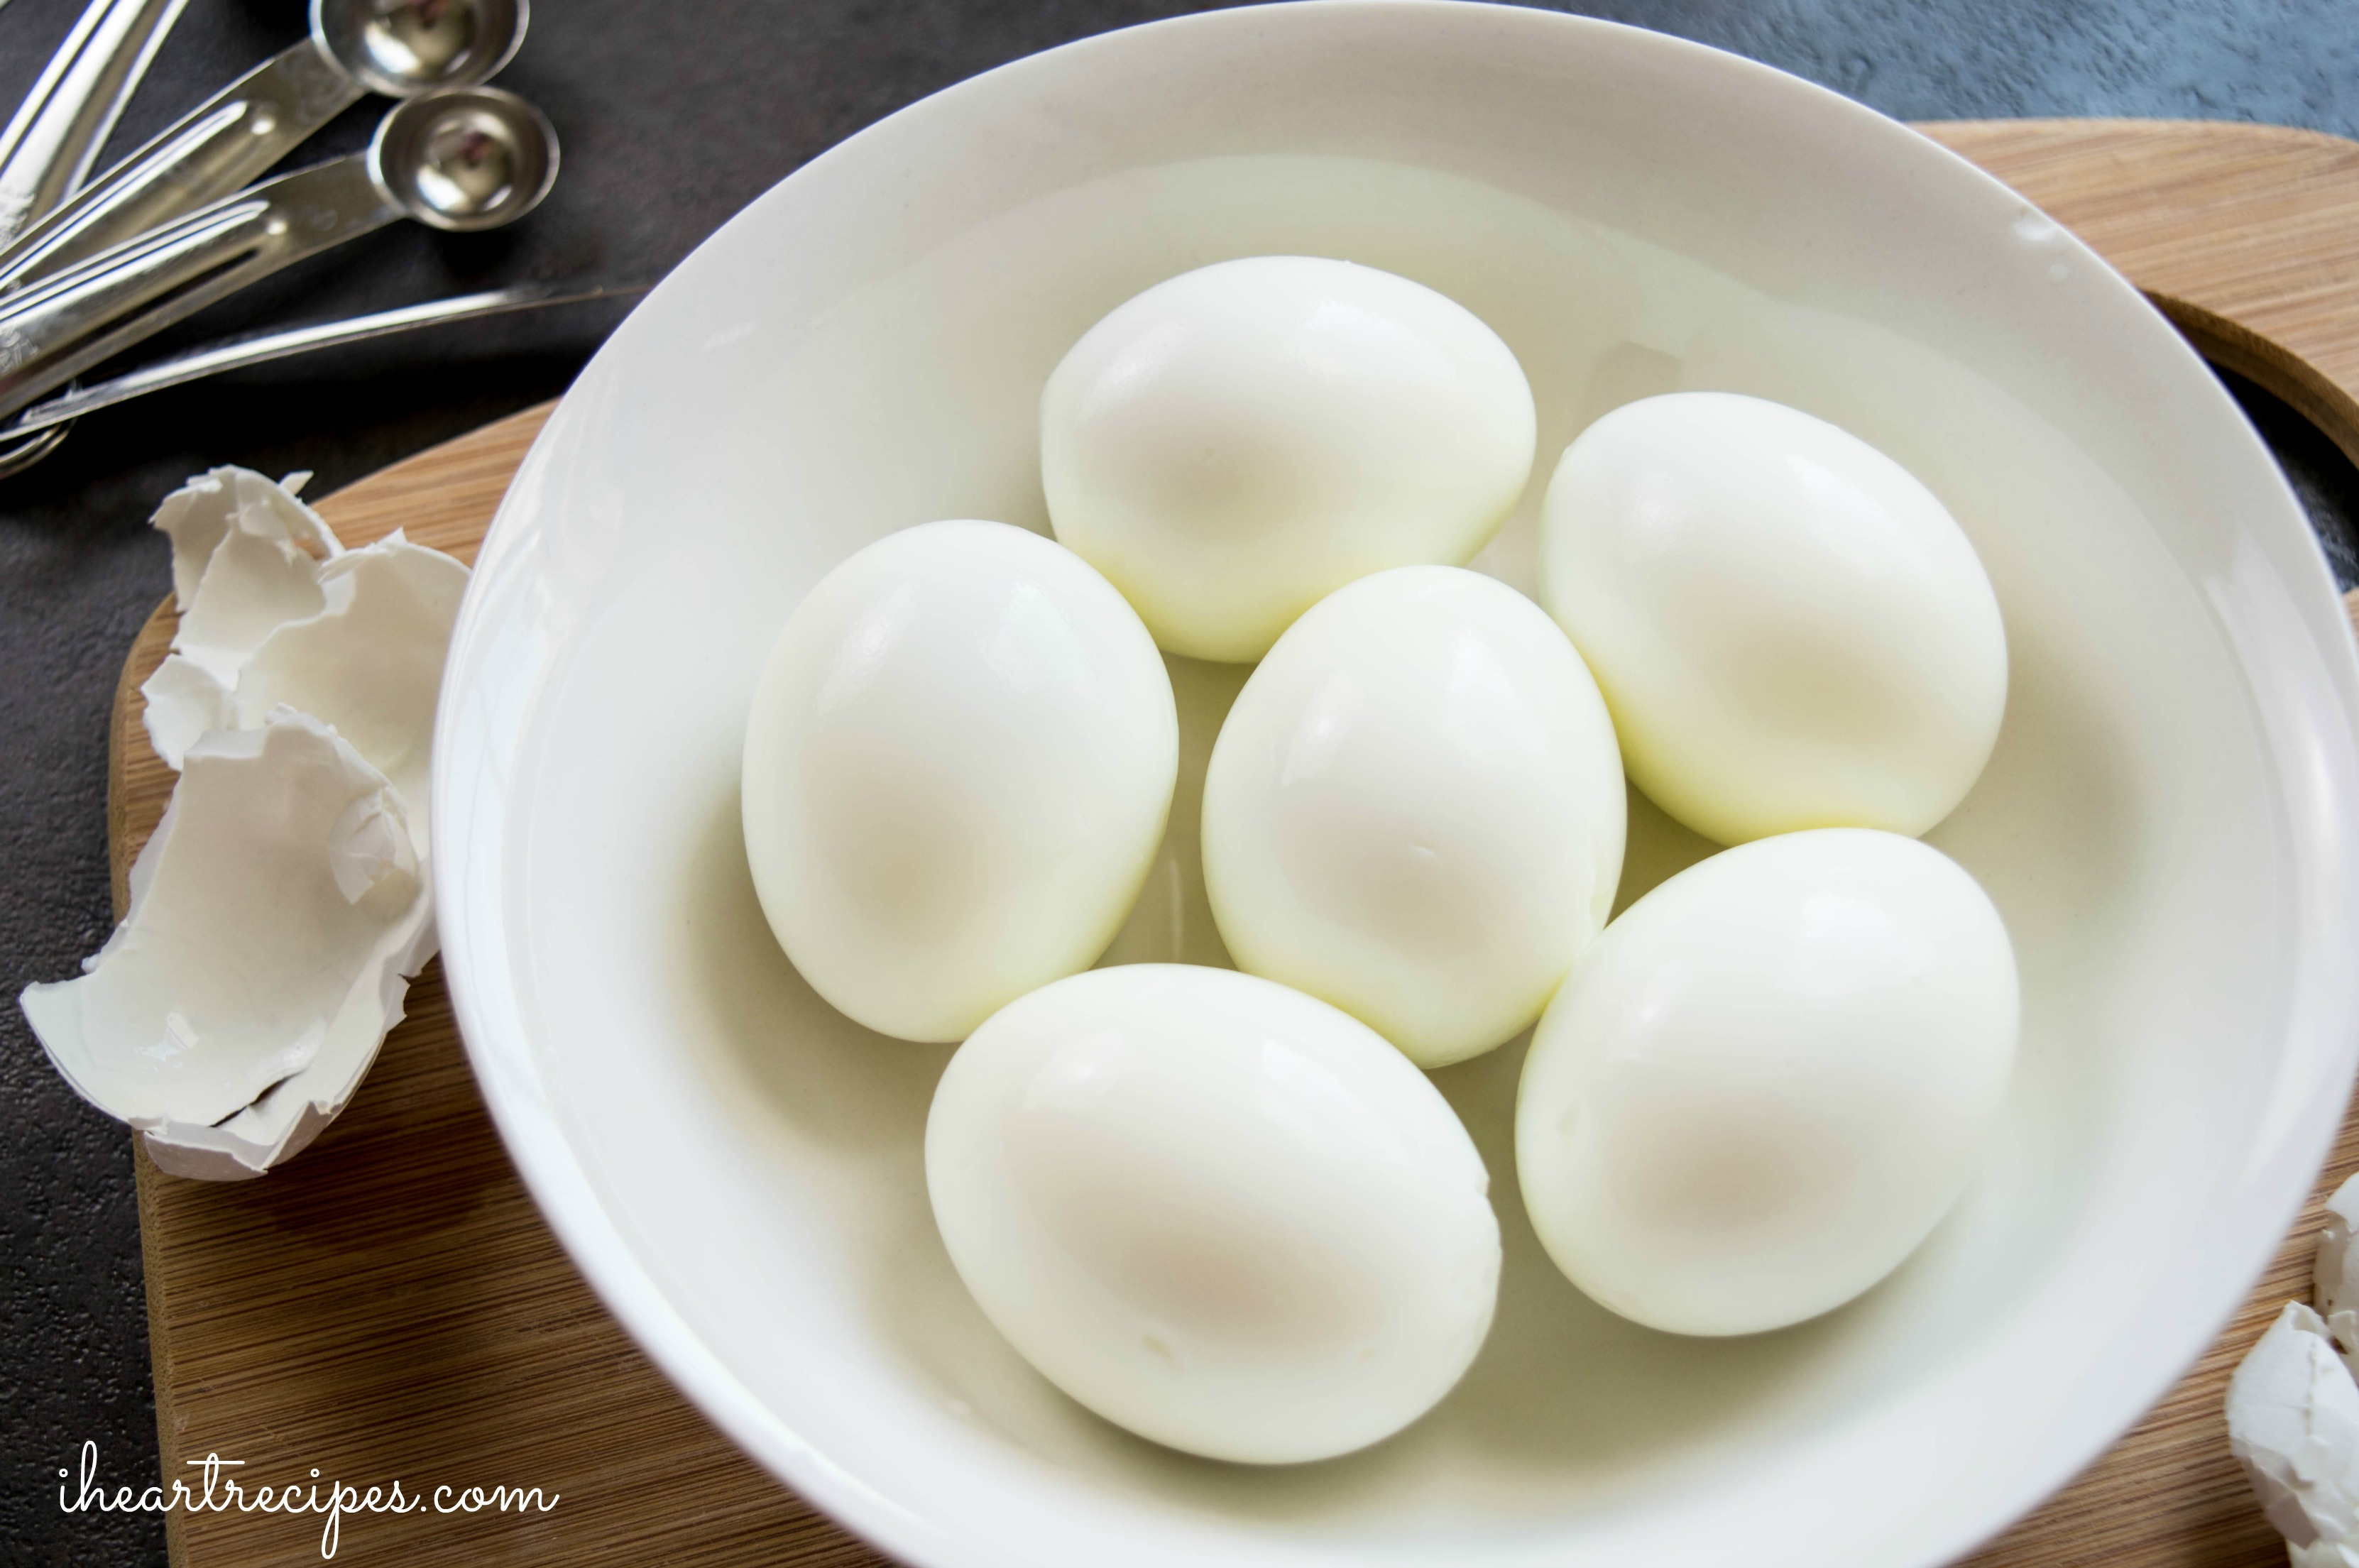 Start with hard boiled eggs for these simple deviled eggs